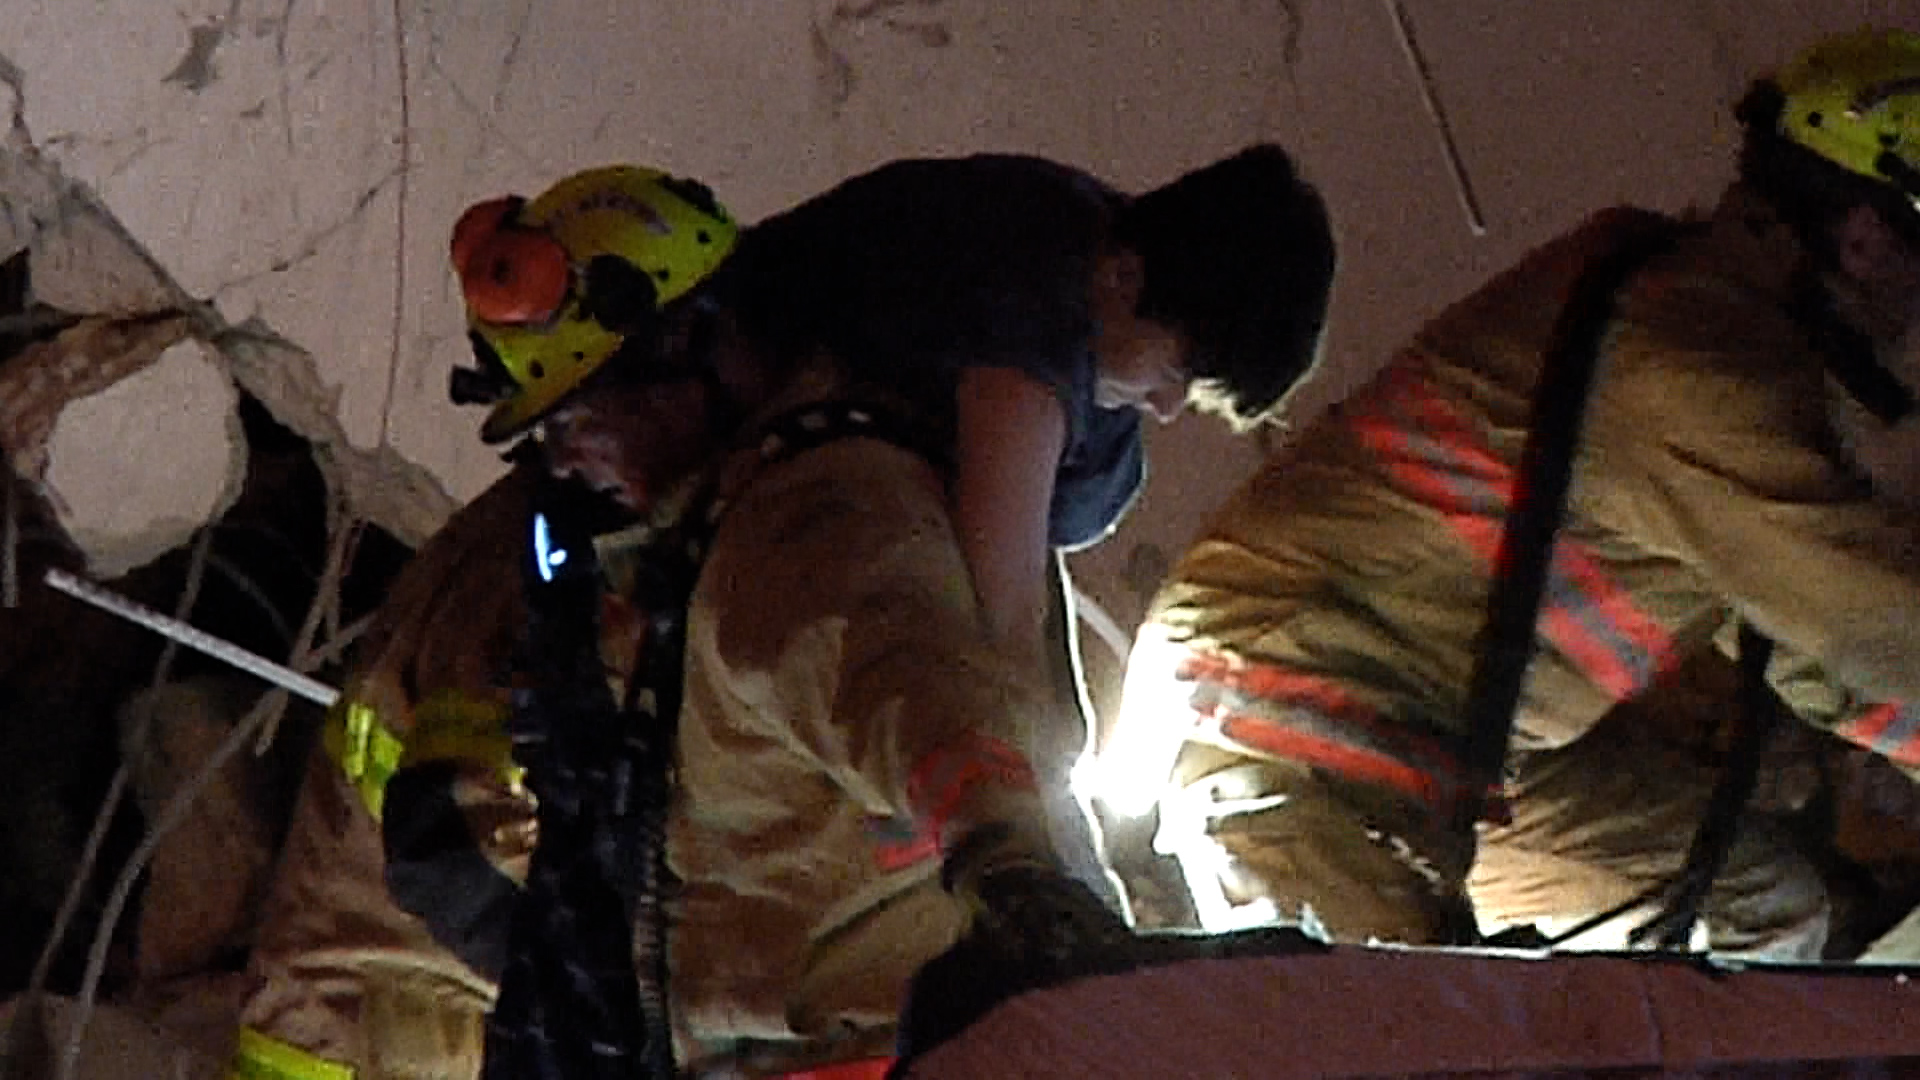 Boy Pulled From Rubble of Collapsed Condo Building in Surfside – NBC Chicago